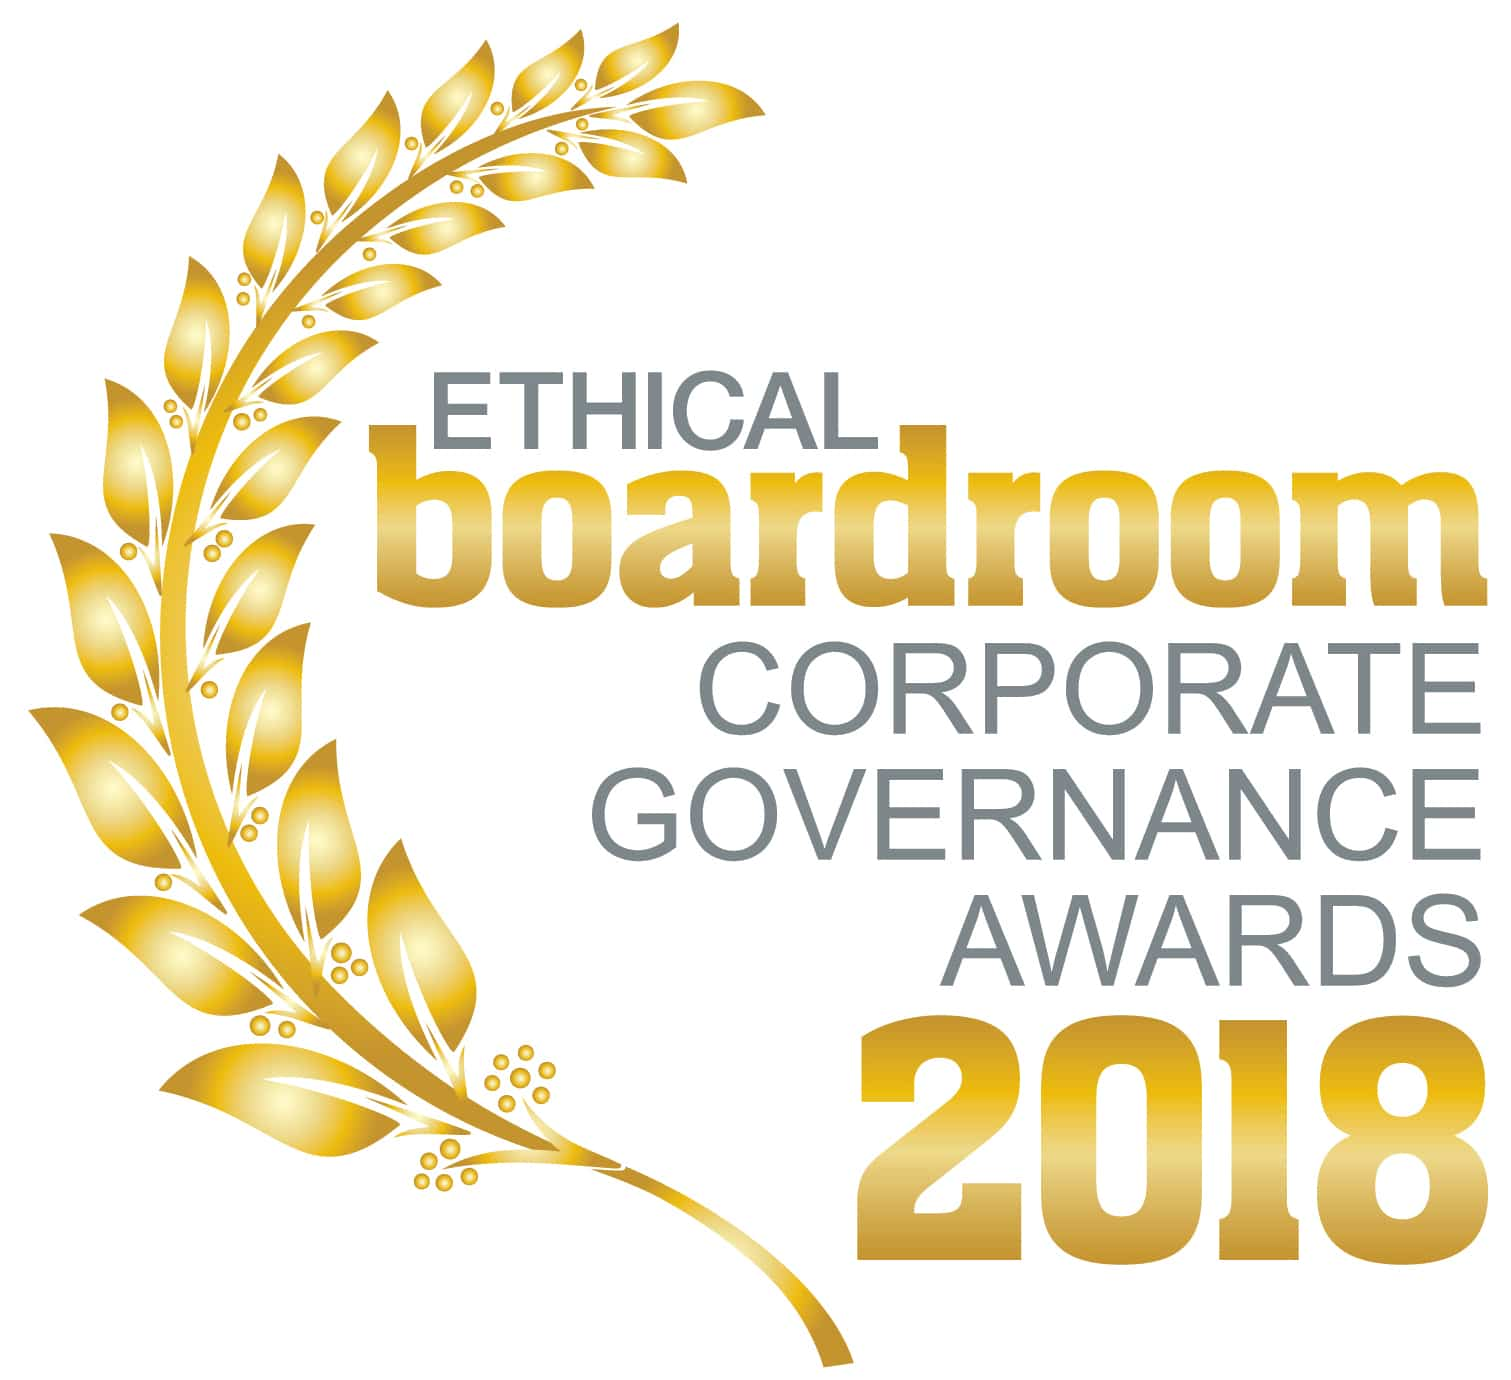 Corporate Governance Winners 2018 - Middle East & Africa Ethical Boardroom